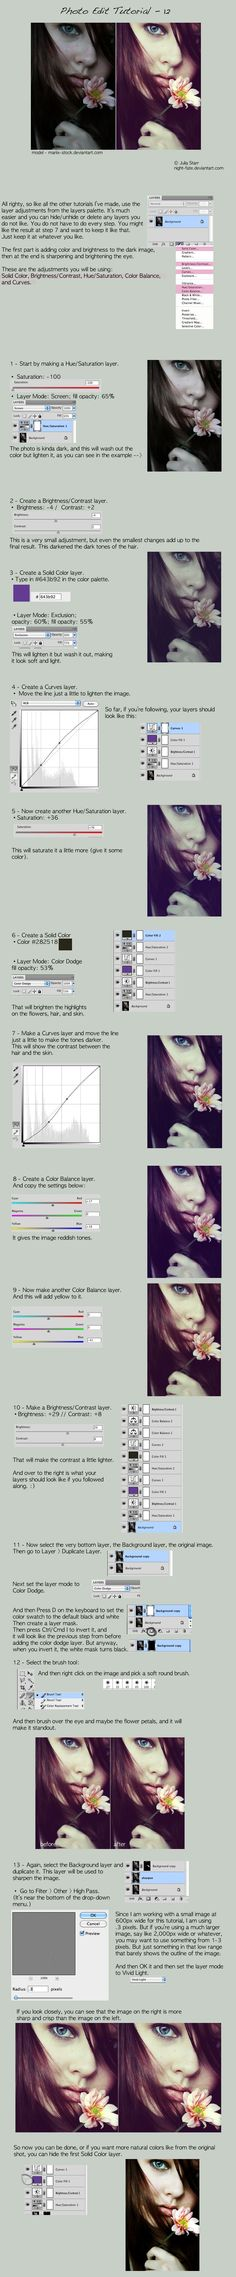 Photo Edit Tutorial 12 by night-fate.deviantart.com on @deviantART